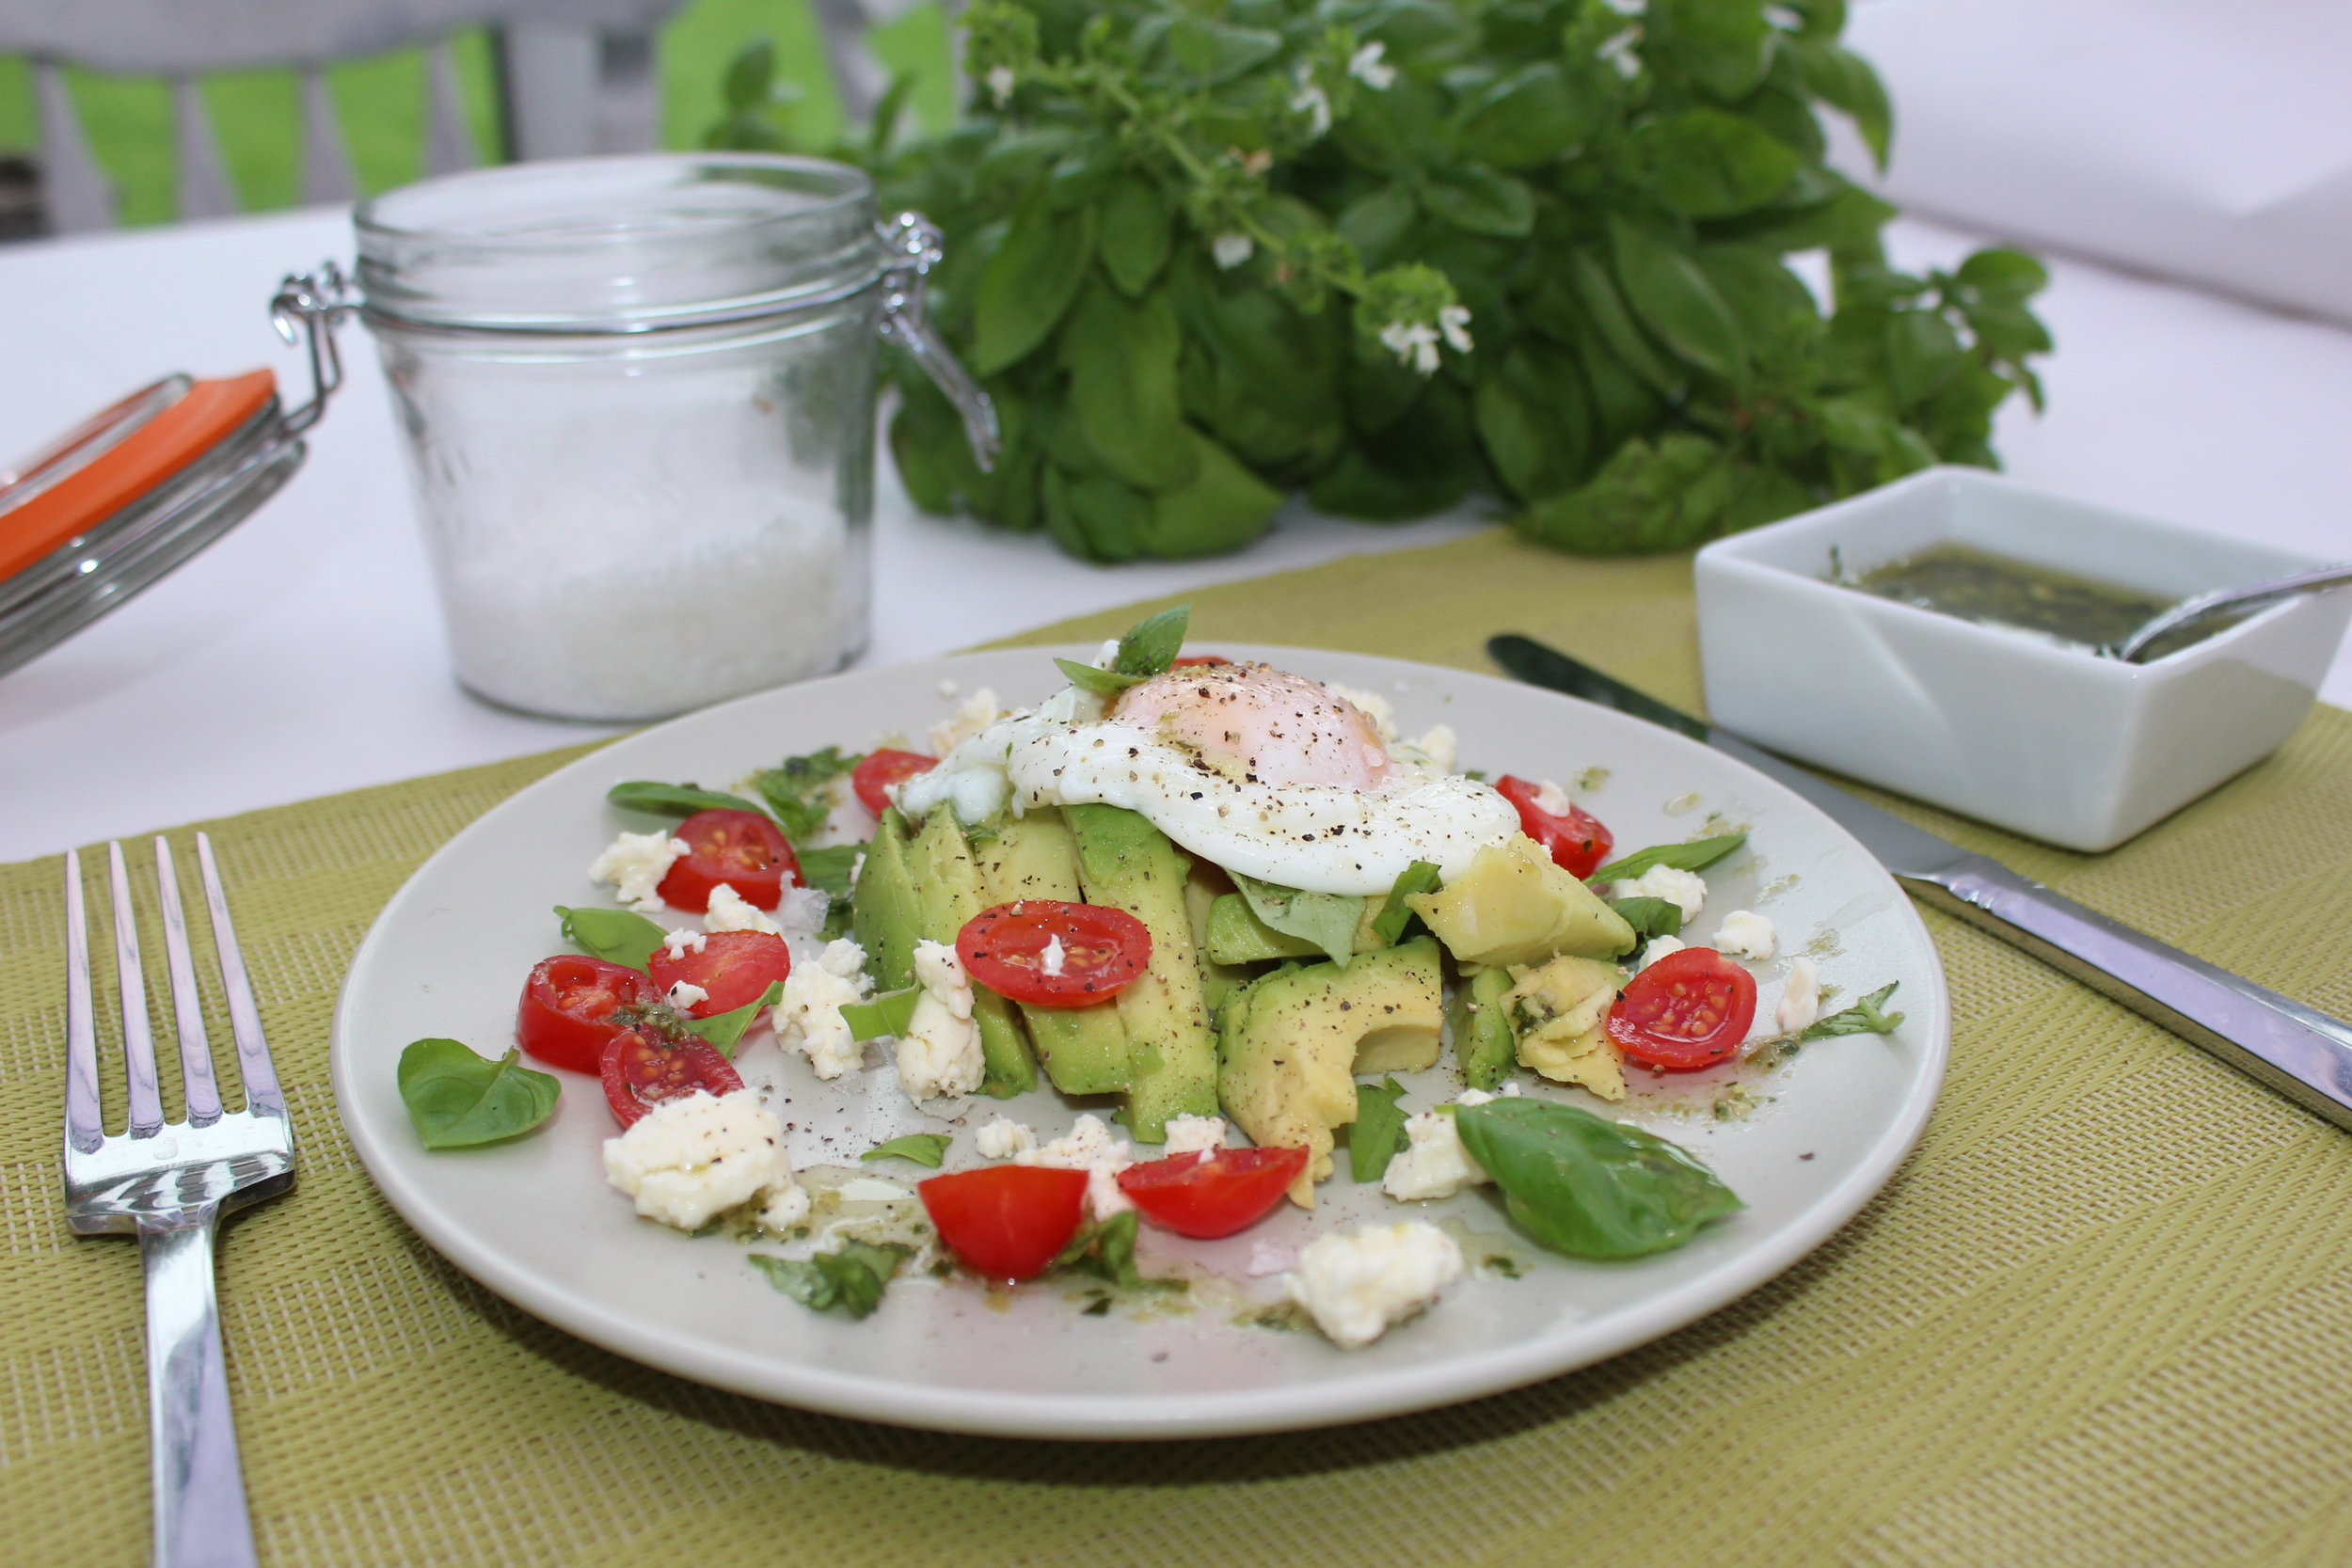 Poached egg on a bed of avocado - full of good fats!